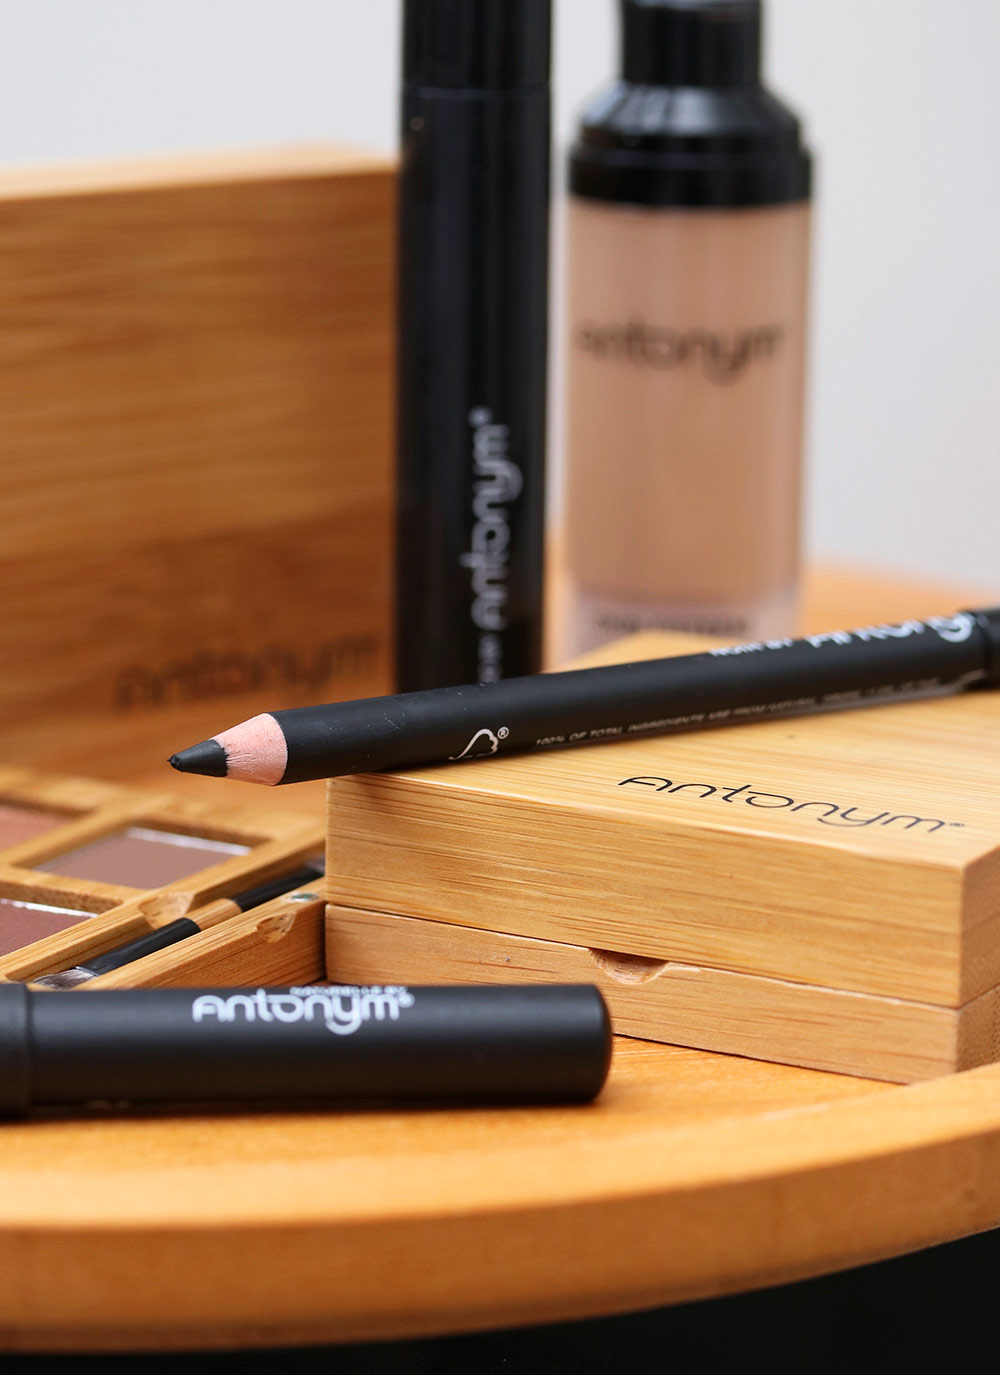 antonym cosmetics noir waterproof eye pencil